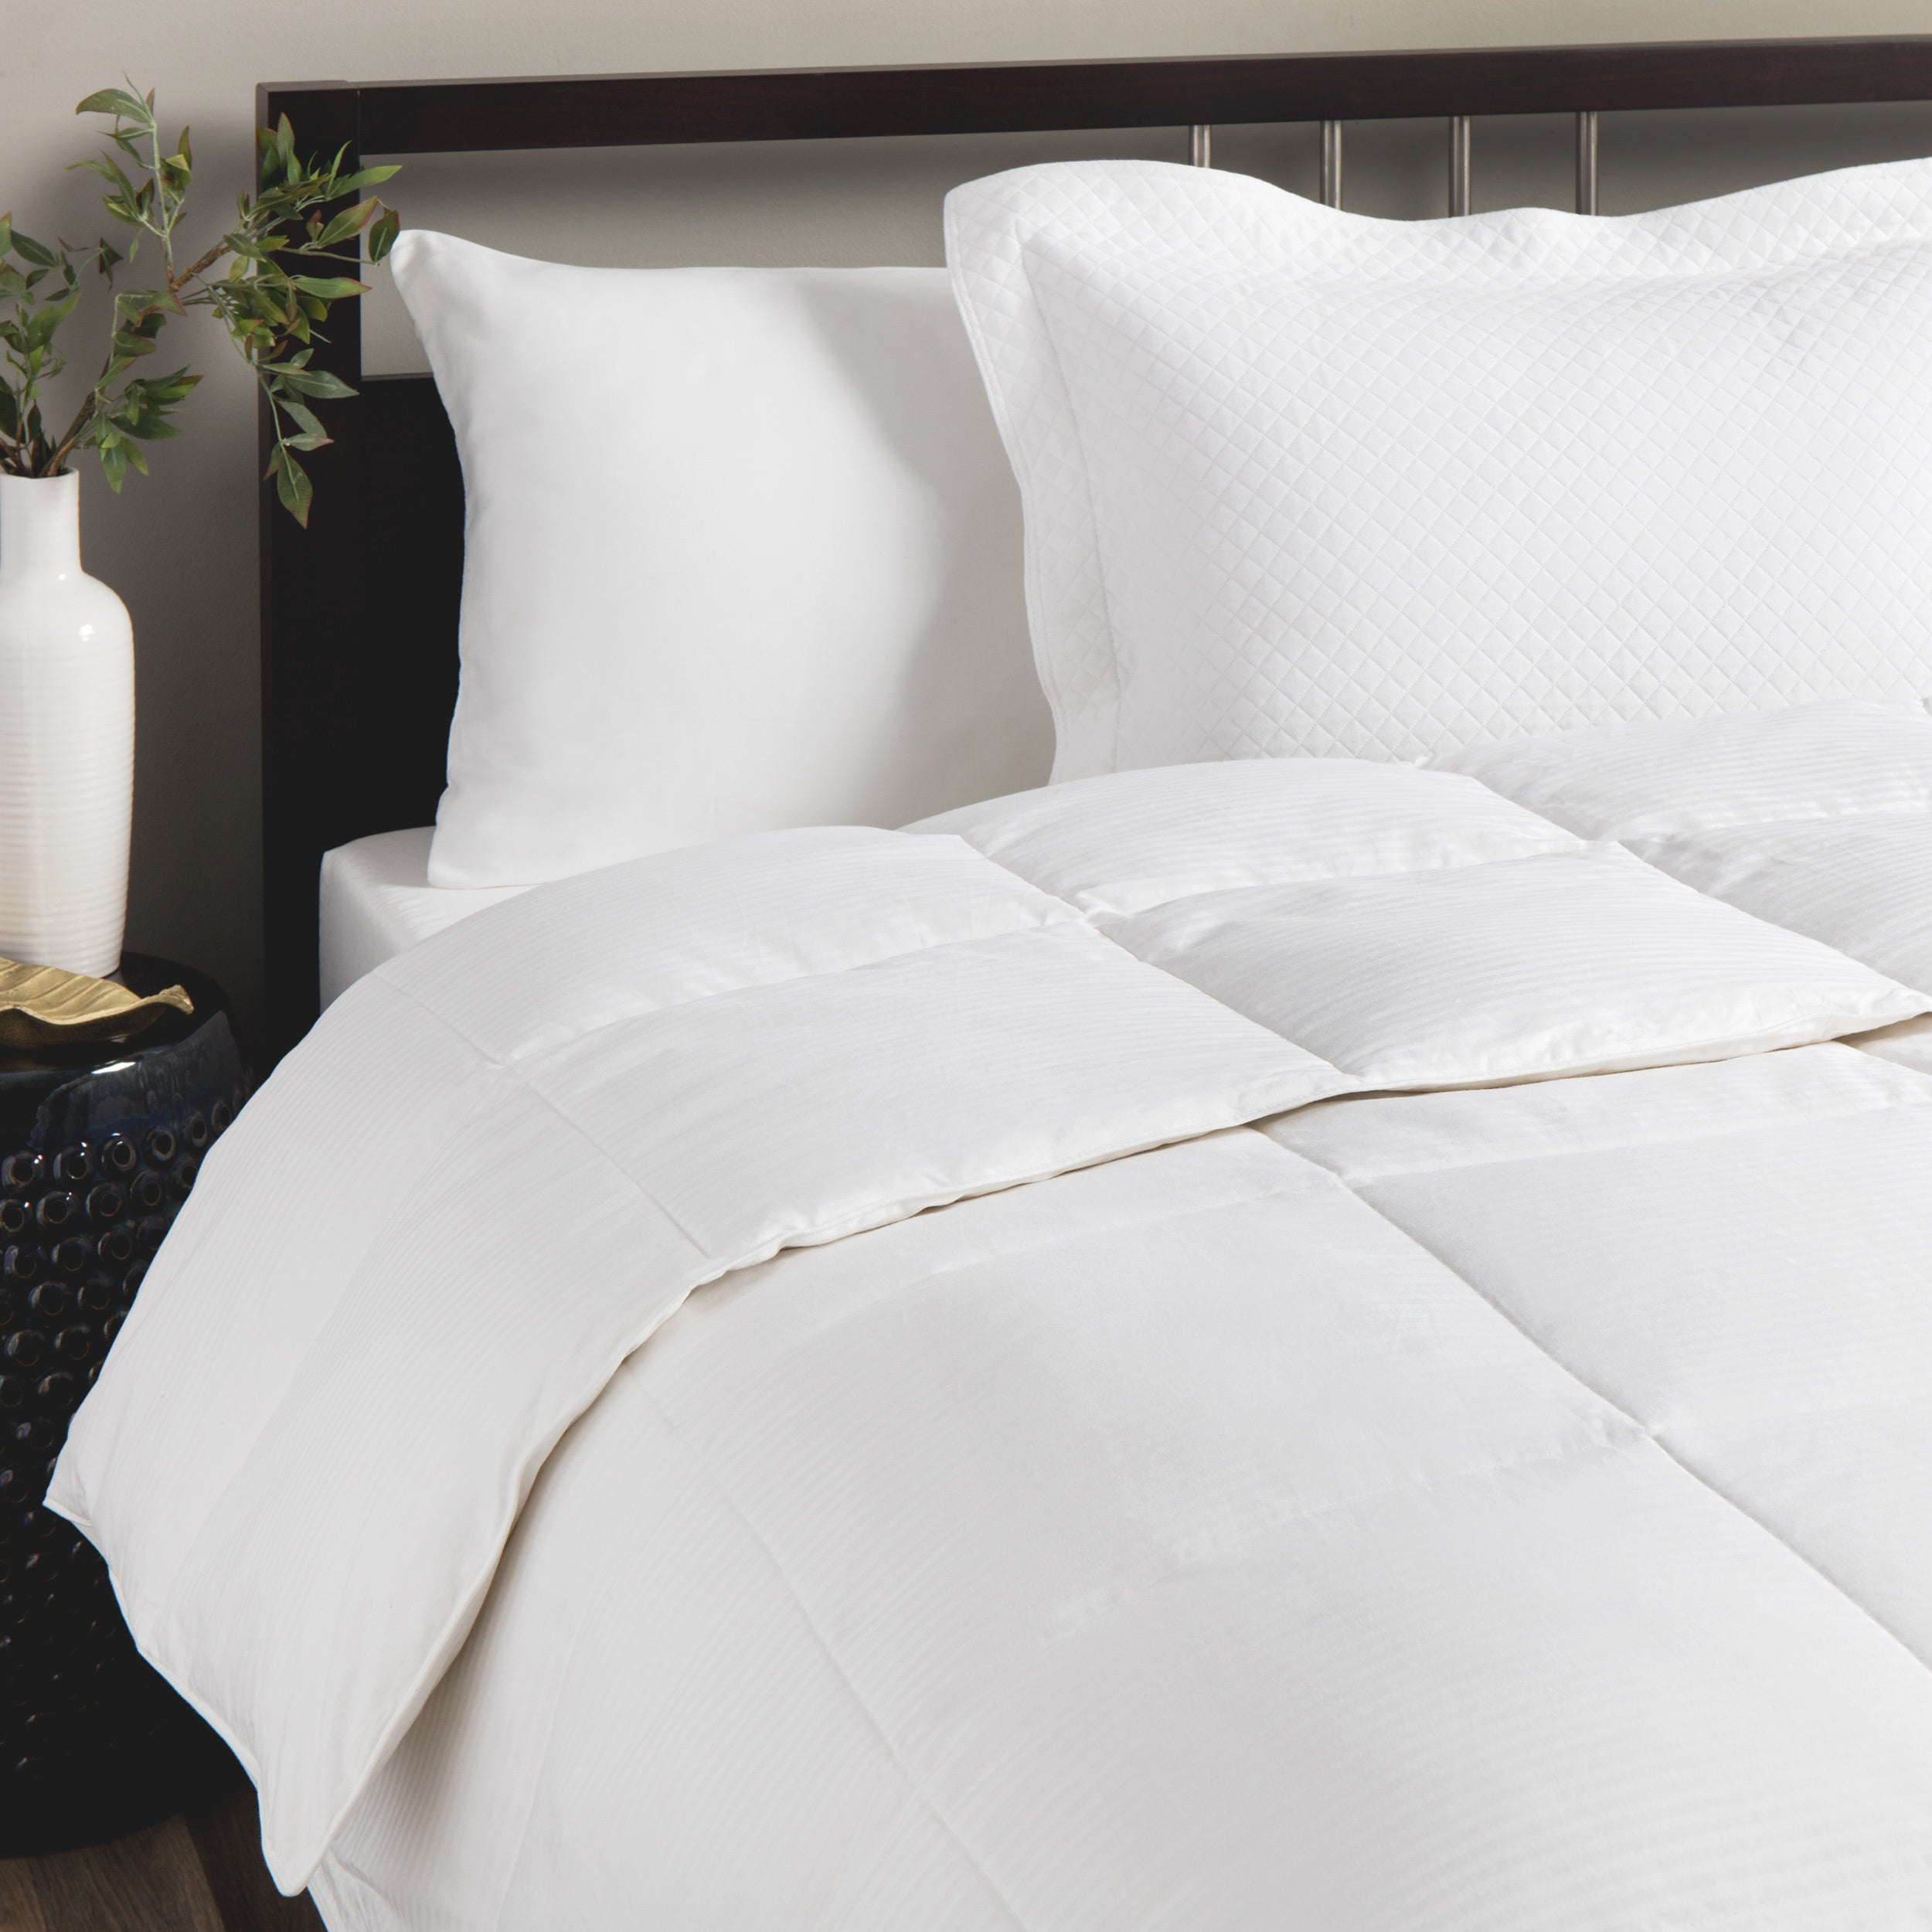 duvet lauren shipping comforter bath taylor goose down bedding feather free product overstock white today